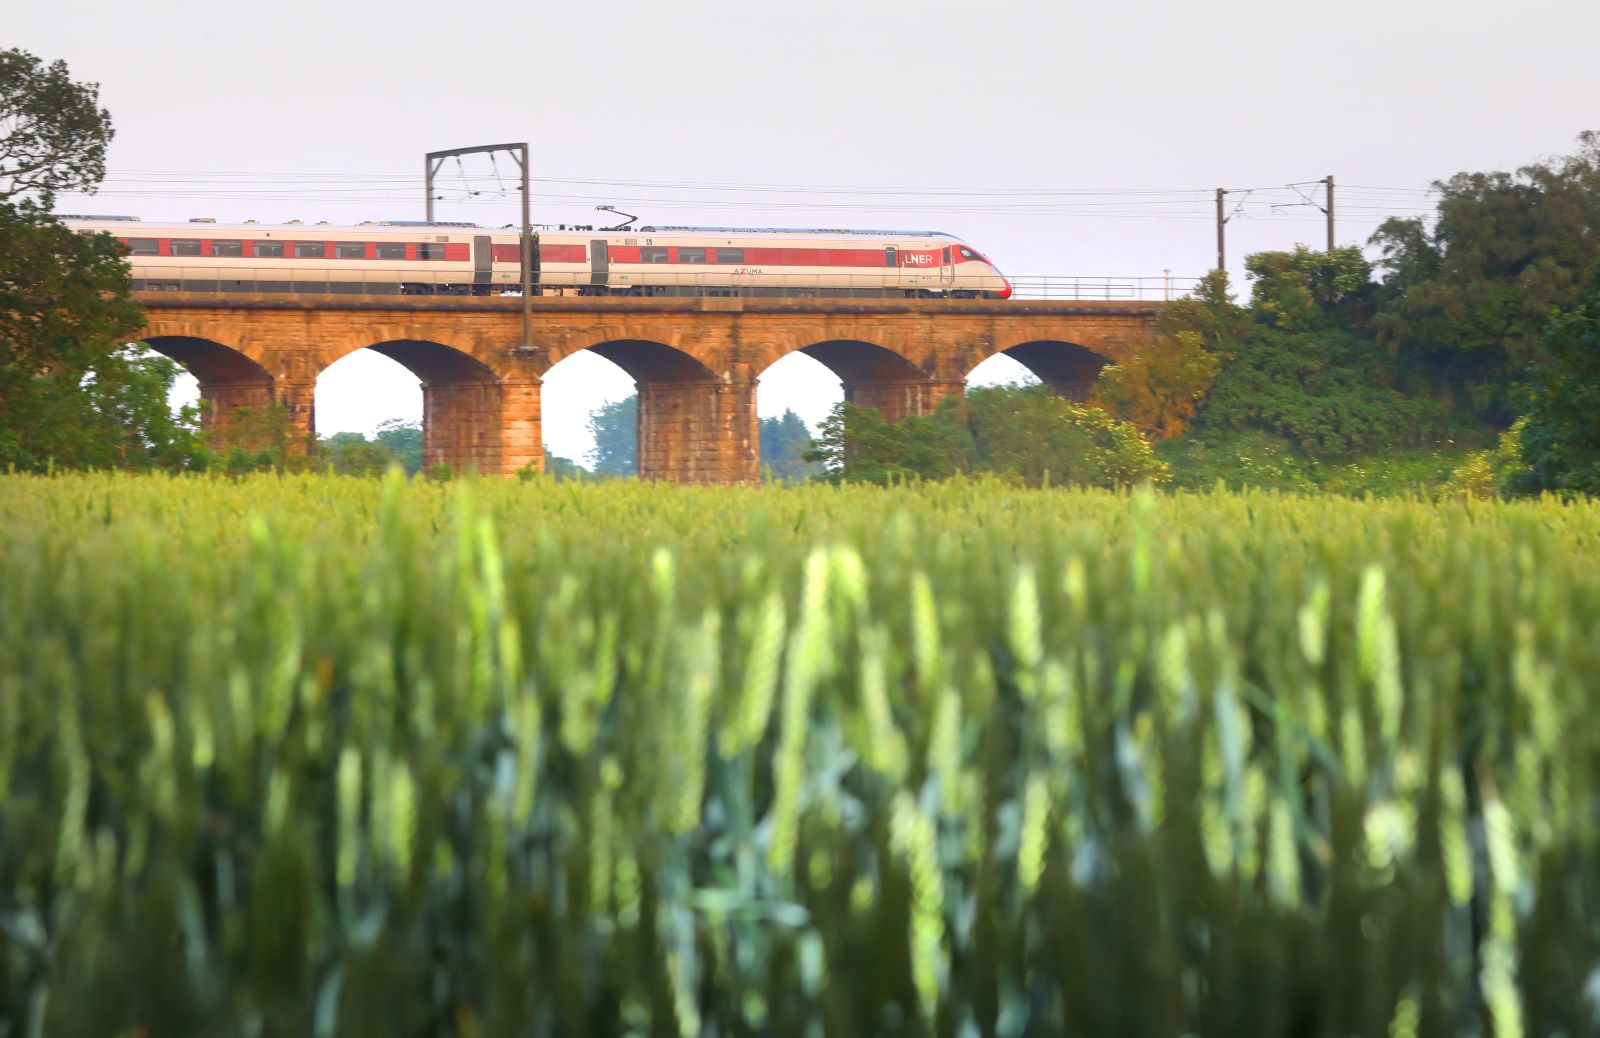 LNER Delivers Significant Environmental Improvements Throughout 2020